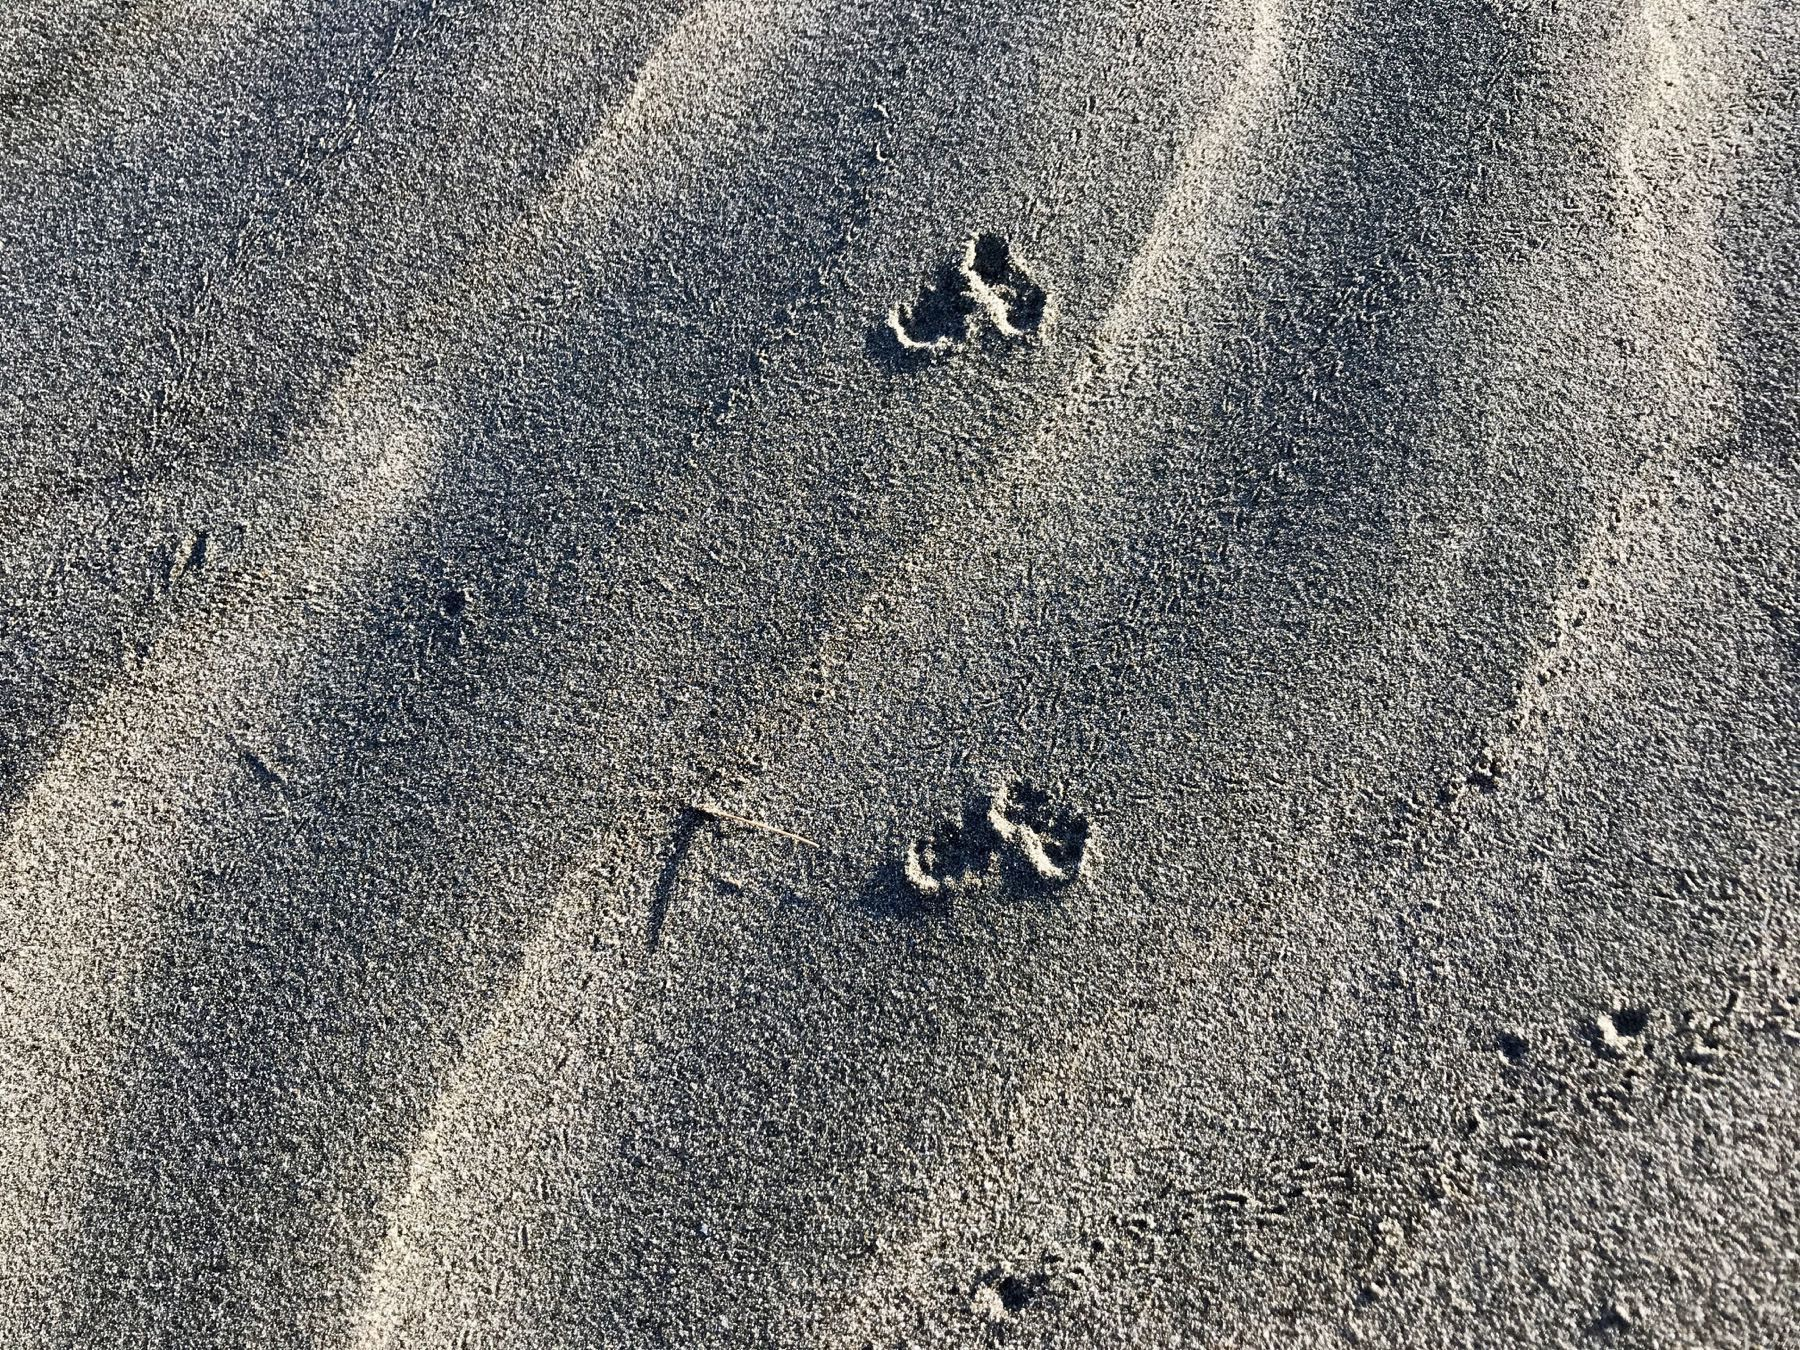 Tiny tracks in the sand at the beach - perhaps a hedgehog or weasel.